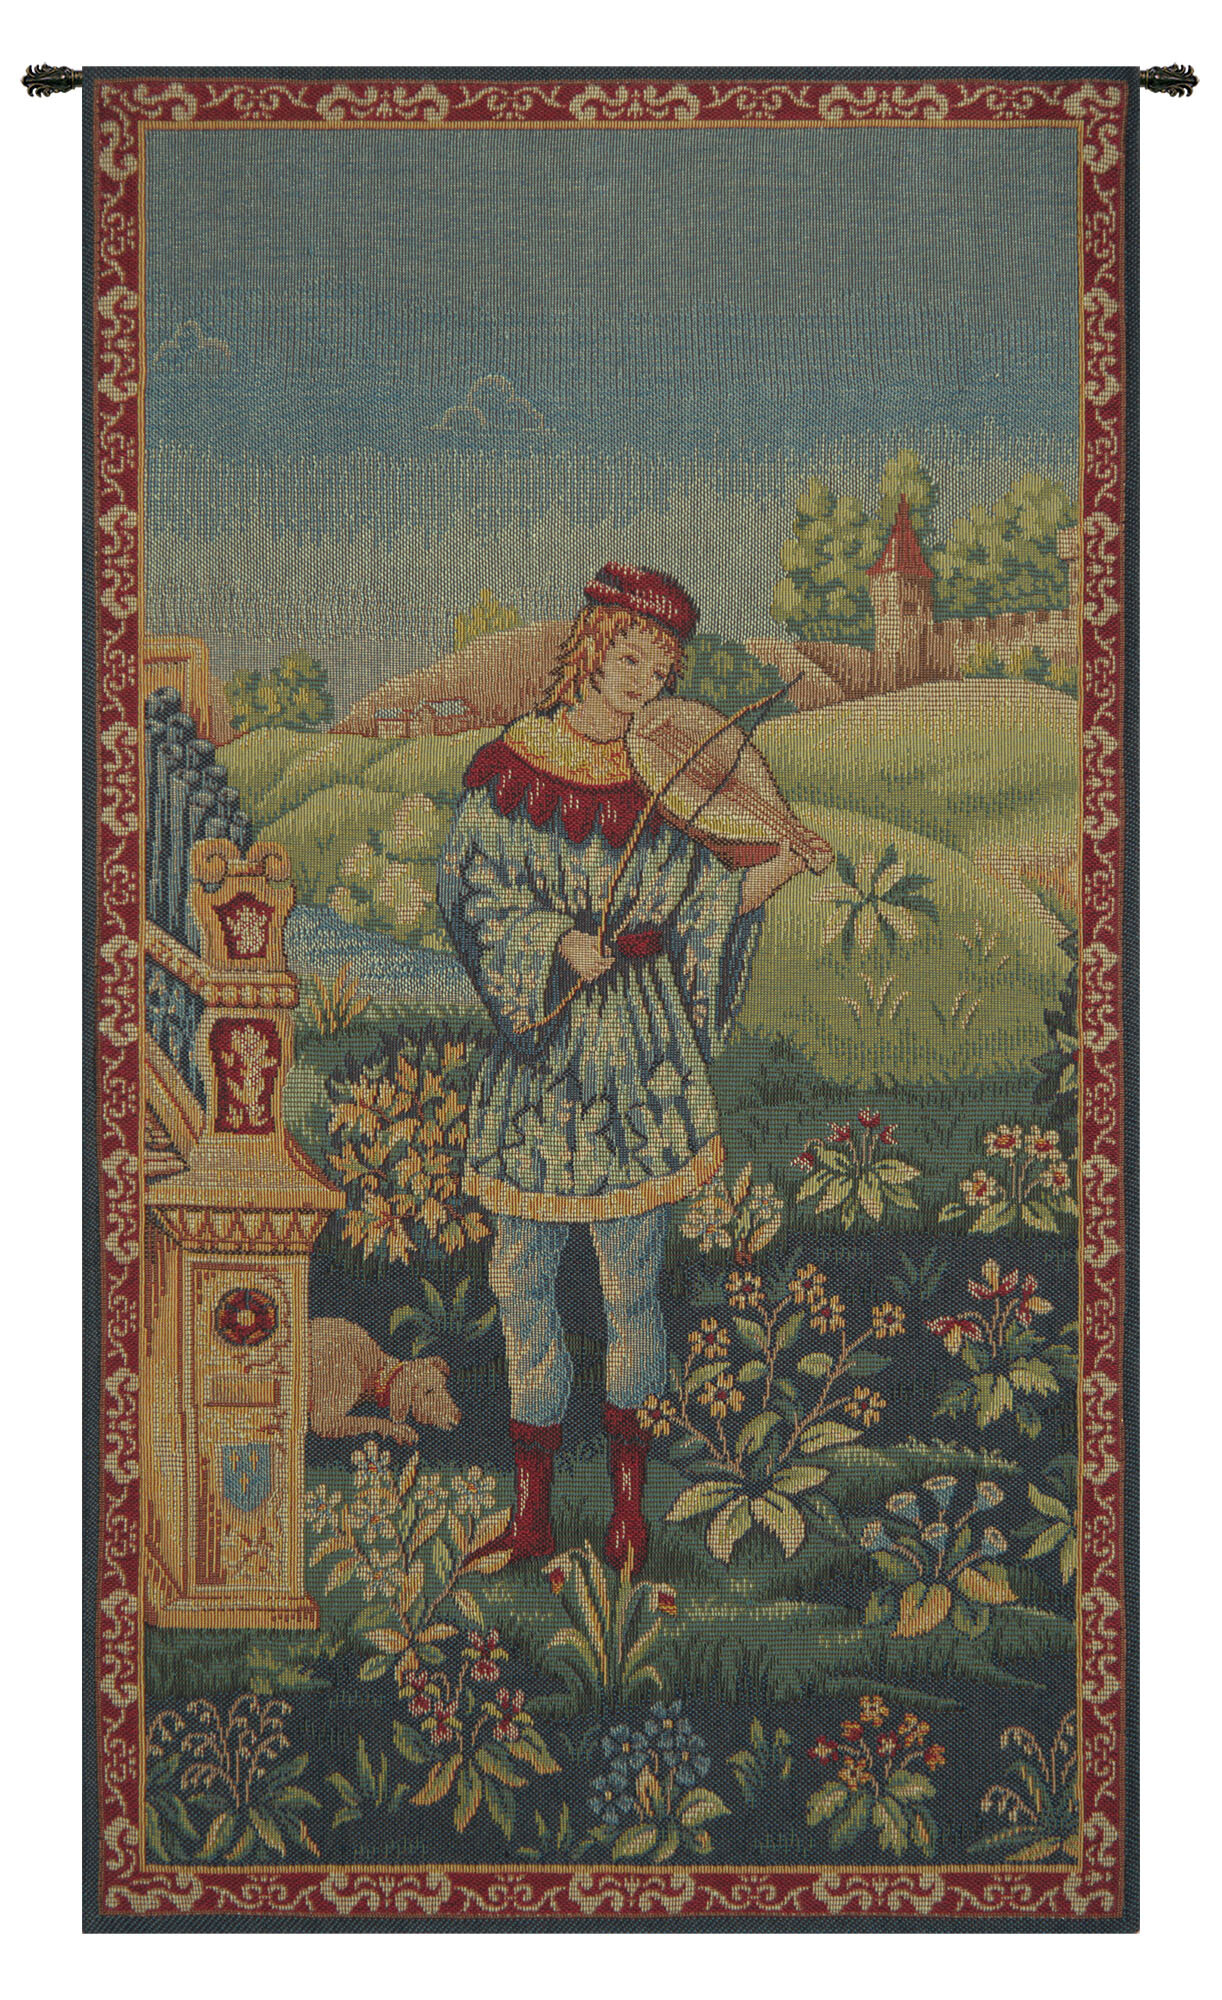 Blended Fabric Le Troubadour Tapestry Throughout Most Recent Blended Fabric Bellagio Scalinata Wall Hangings (View 2 of 20)